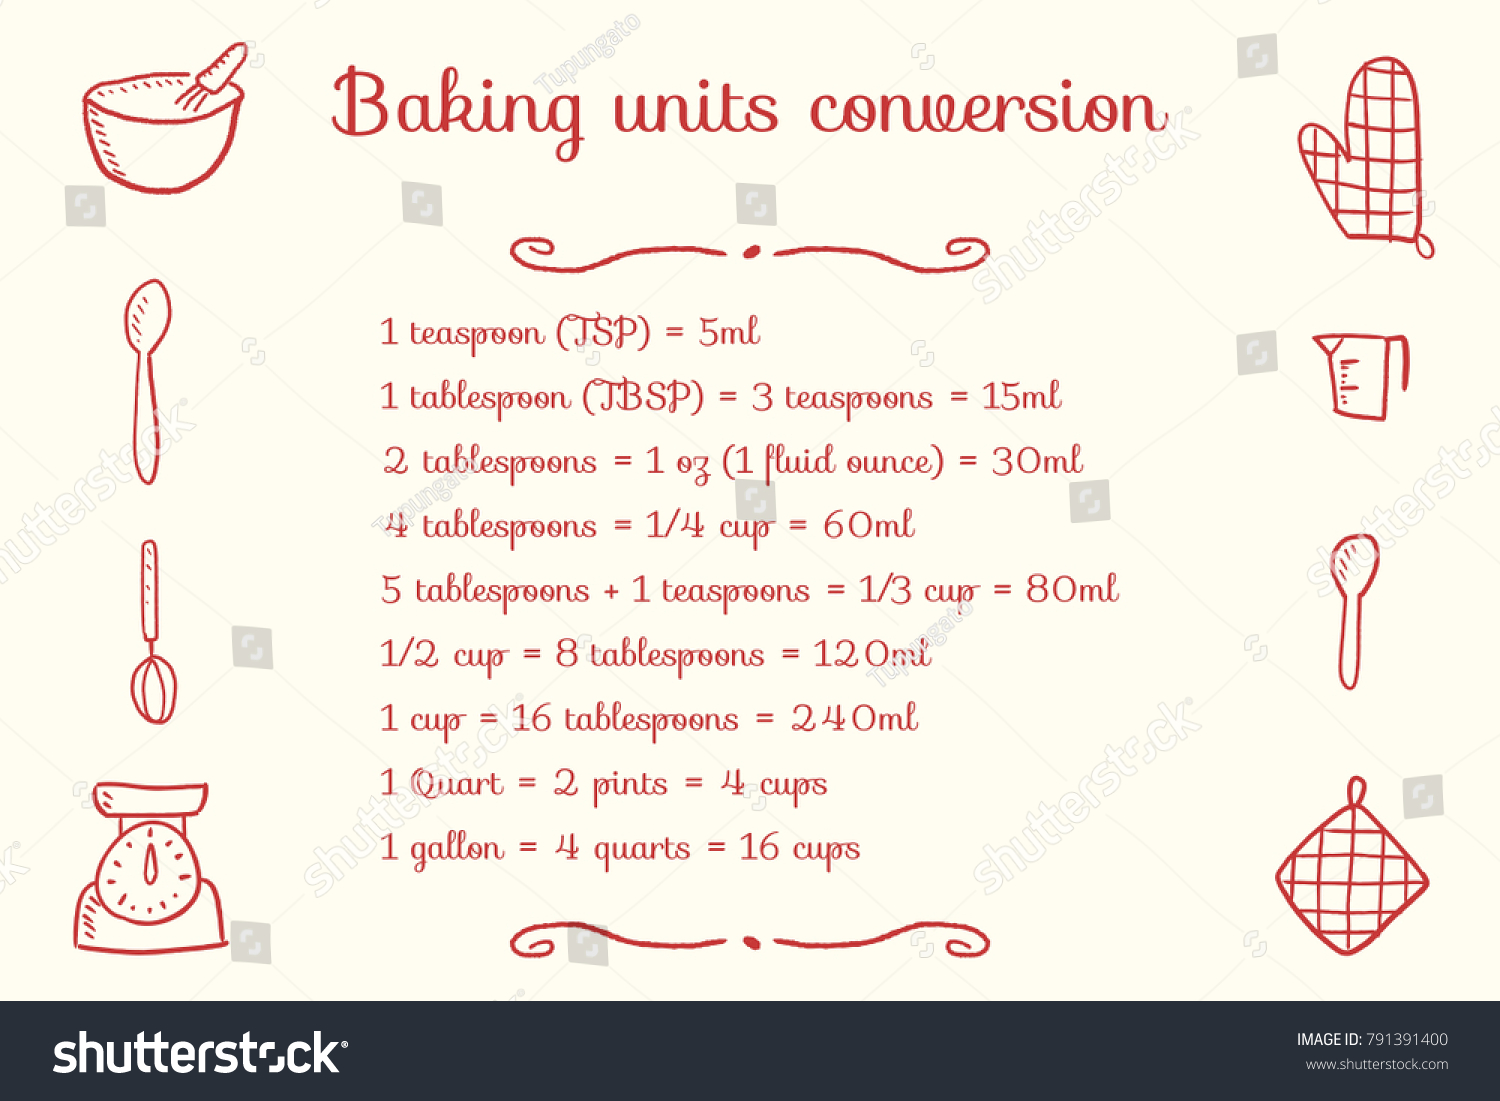 Baking units conversion chart kitchen measurement stock vector baking units conversion chart kitchen measurement units cooking design nvjuhfo Image collections